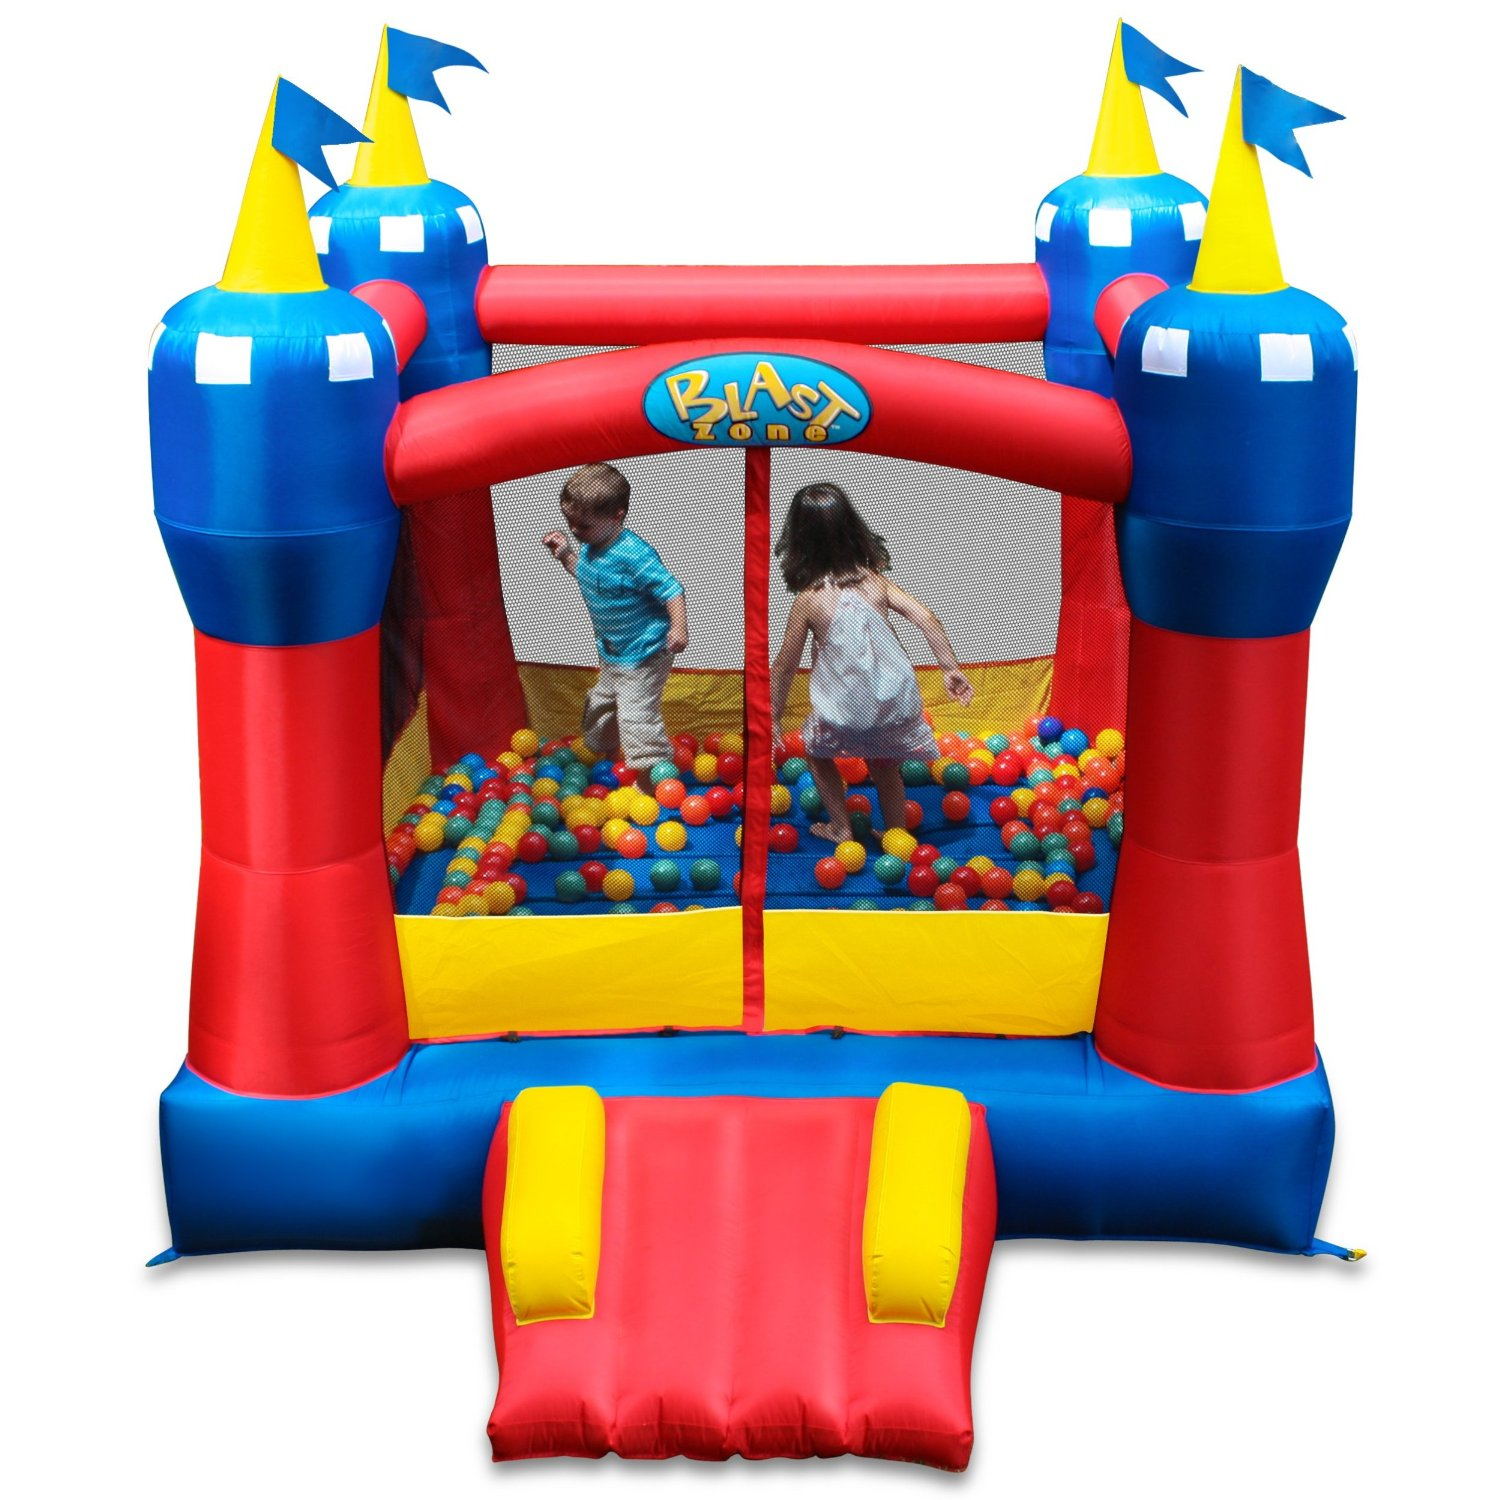 Fancy Little Tikes Bounce House For Play Yard Ideas: Awesome Little Tikes Bounce House Made Of Caoutchouc In Castle Design With Plastic Ball For Kids Play Room Ideas